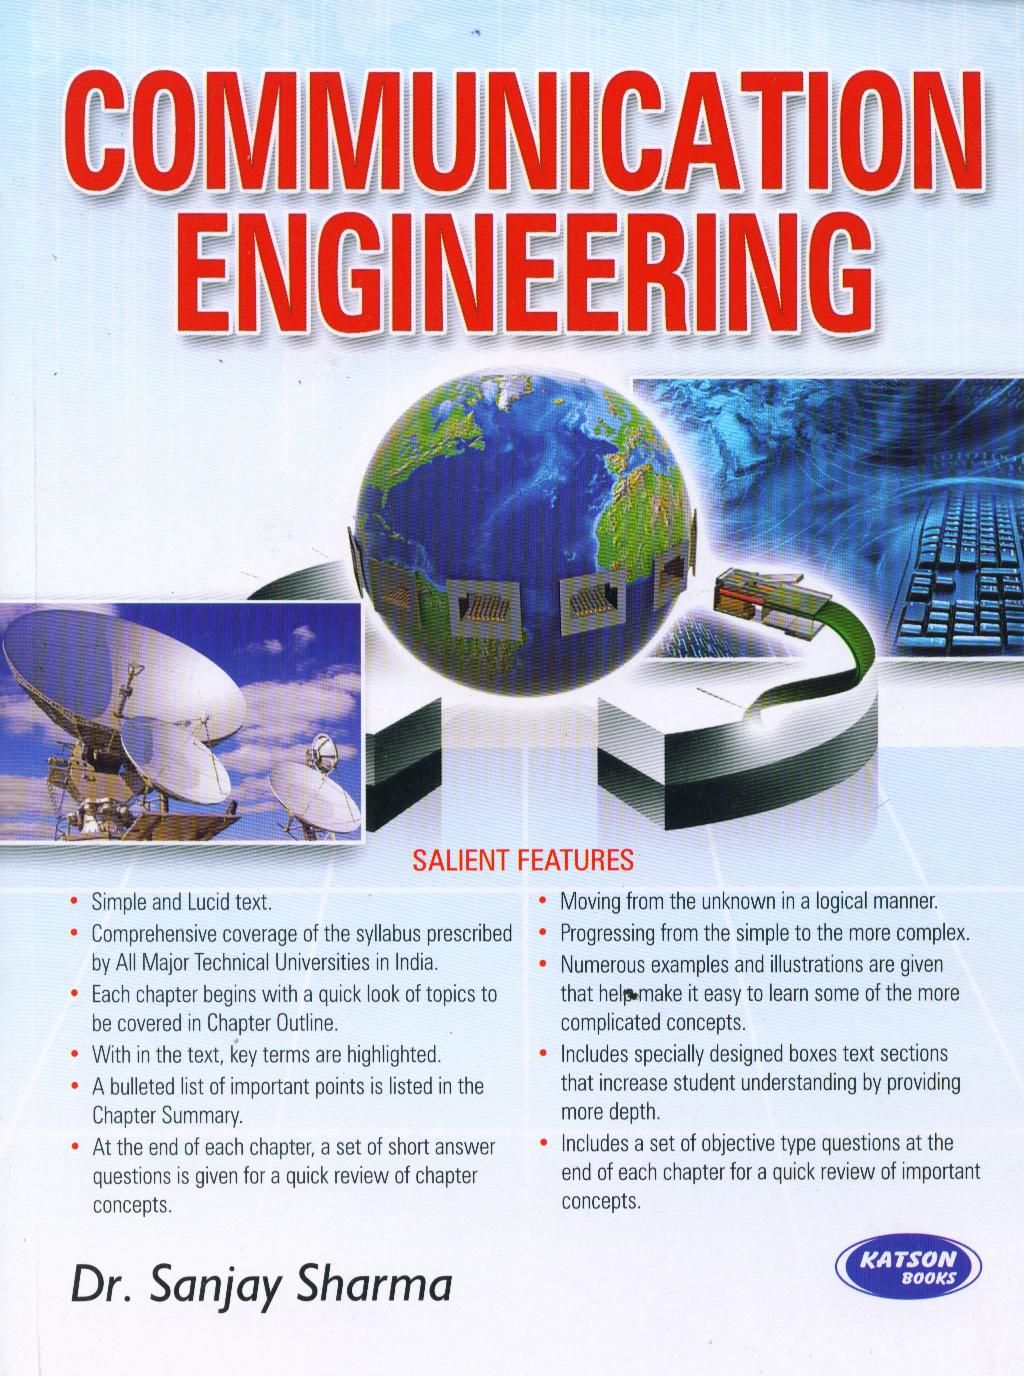 Communications engineering books communication engineering book o communications engineering books communication engineering book online author sanjay sharma publisher sk kataria and sons about book covers all the fandeluxe Choice Image